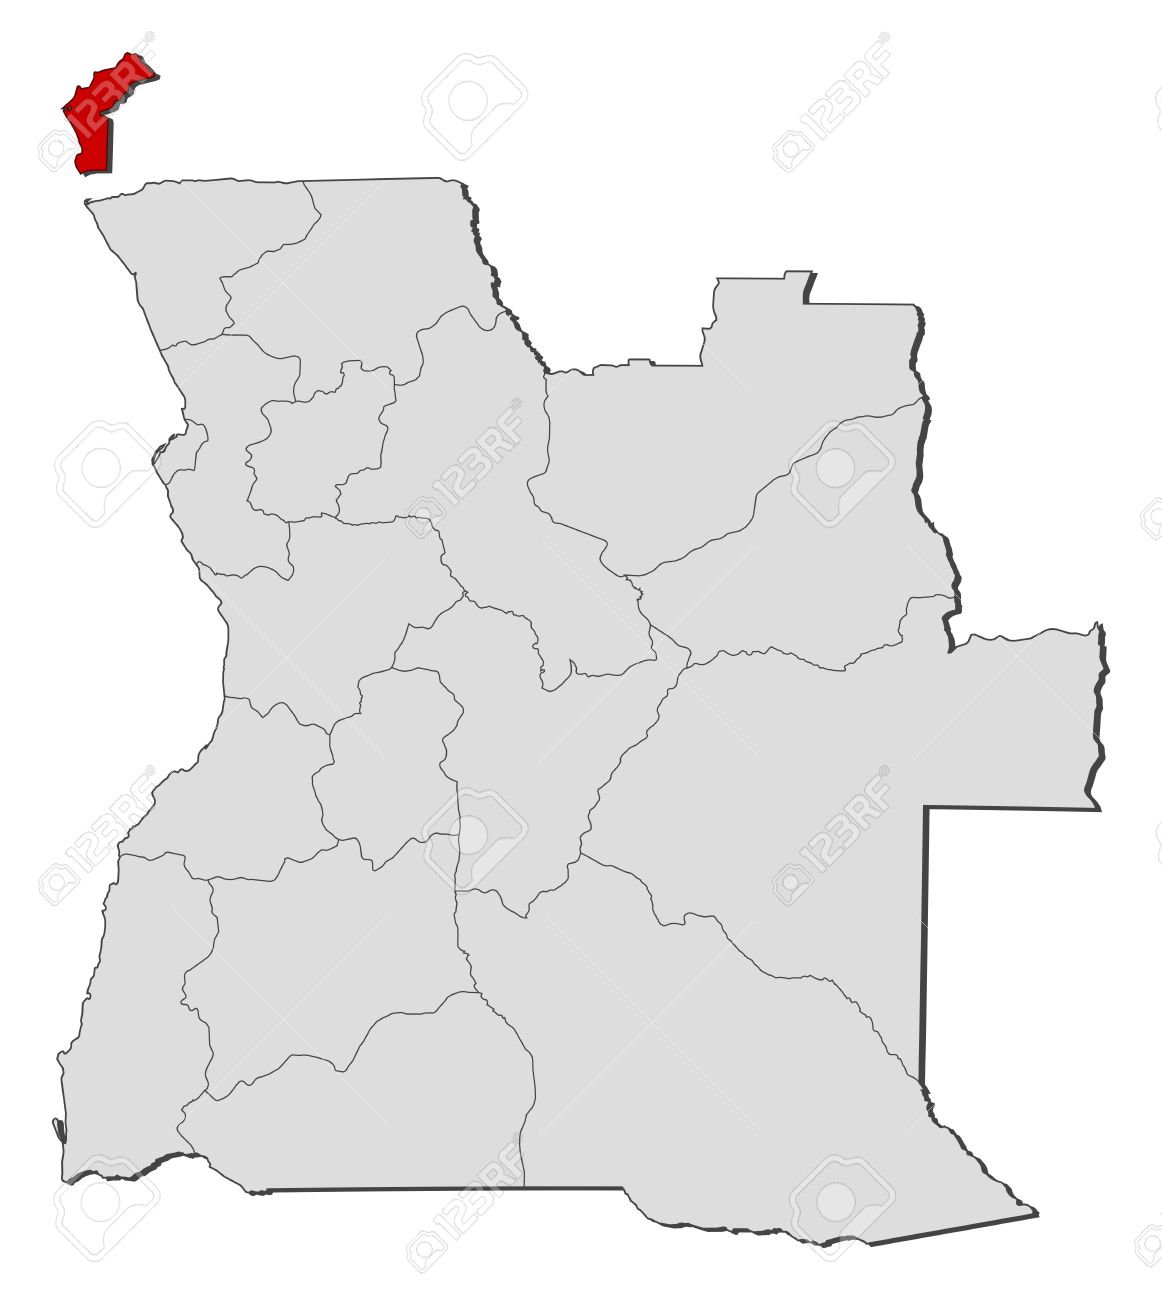 Political Map Of Angola With The Several States Where Cabinda - Political map of angola